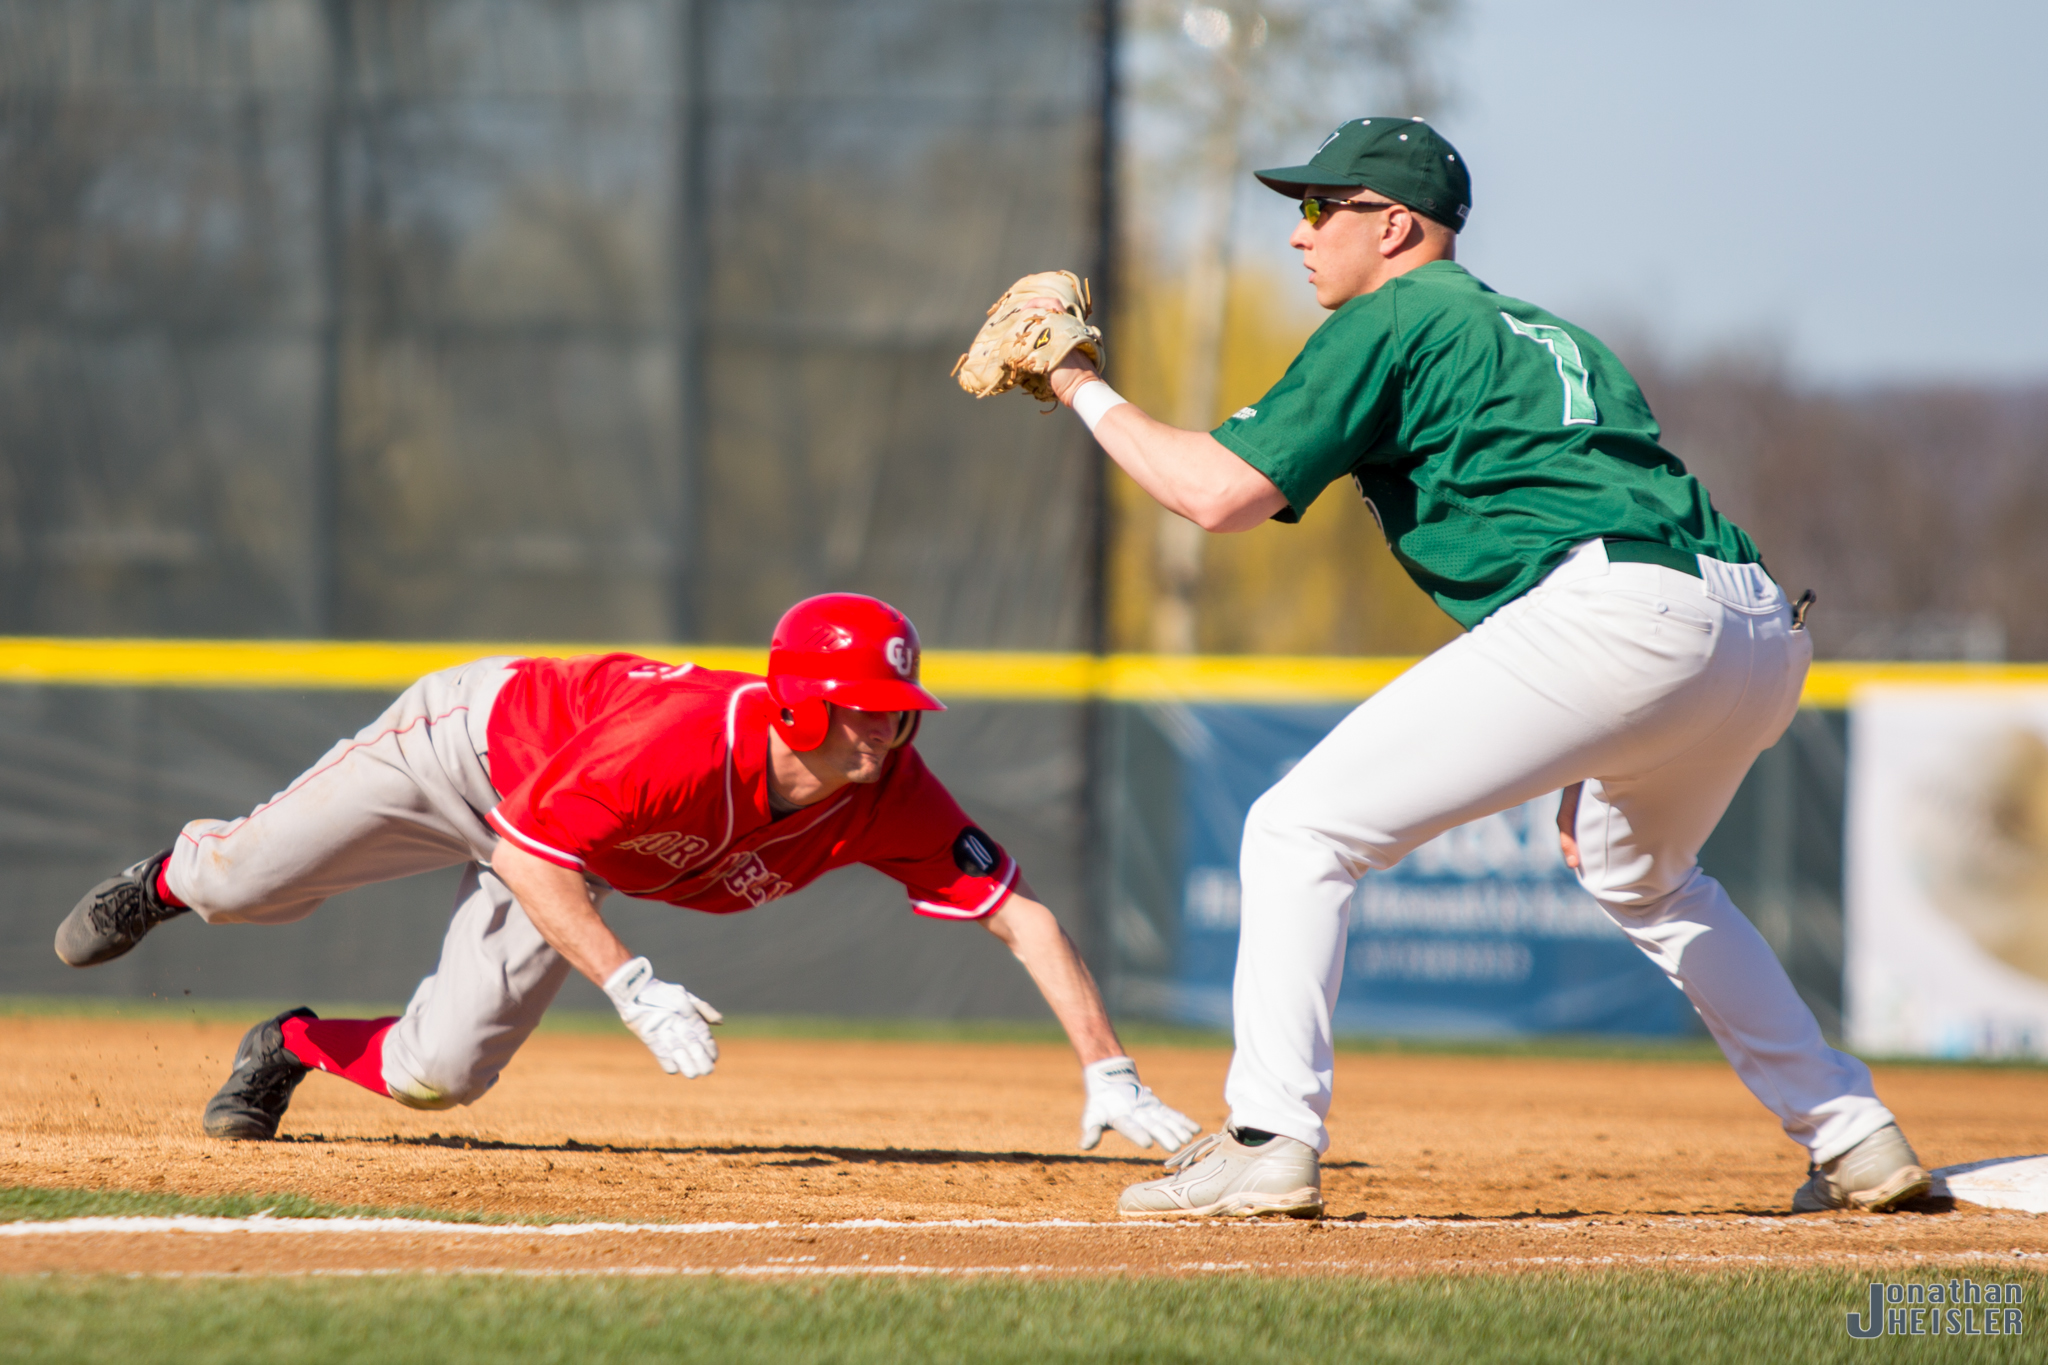 Rising sophomore and first baseman, Greg Ostner excelled for Binghamton in both the America East tournament and the Stillwater Regional during the 2014 season.